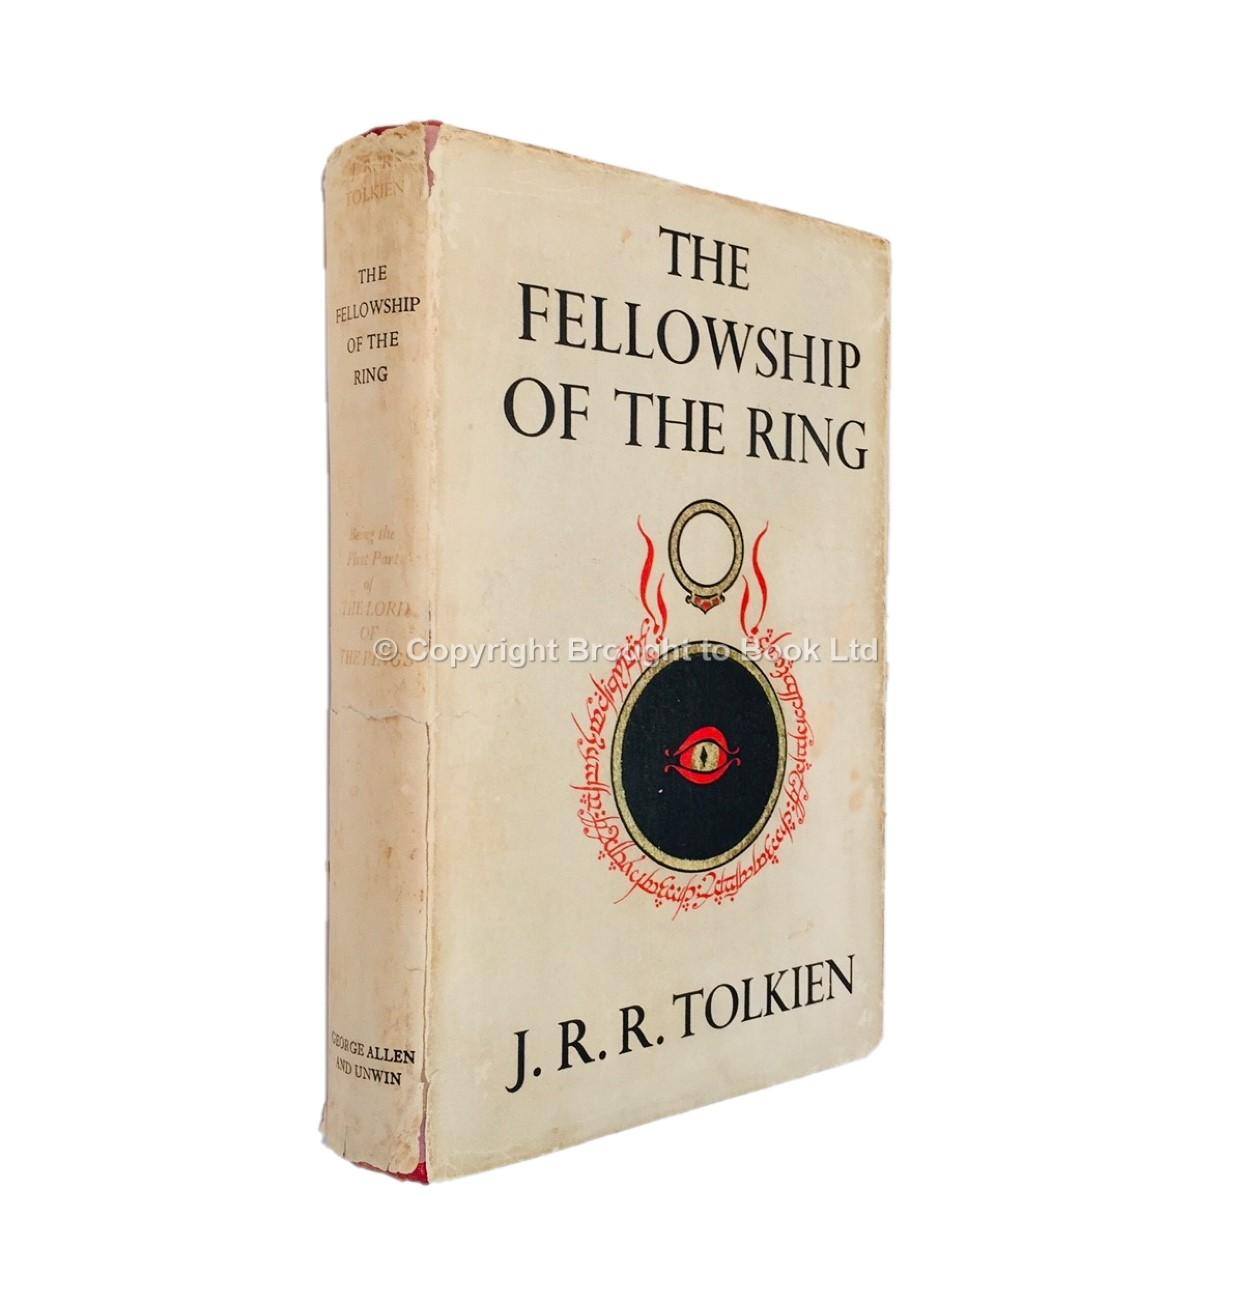 The Fellowship of the Ring Signed J.R.R. Tolkien J.R.R. Tolkien Fine Hardcover